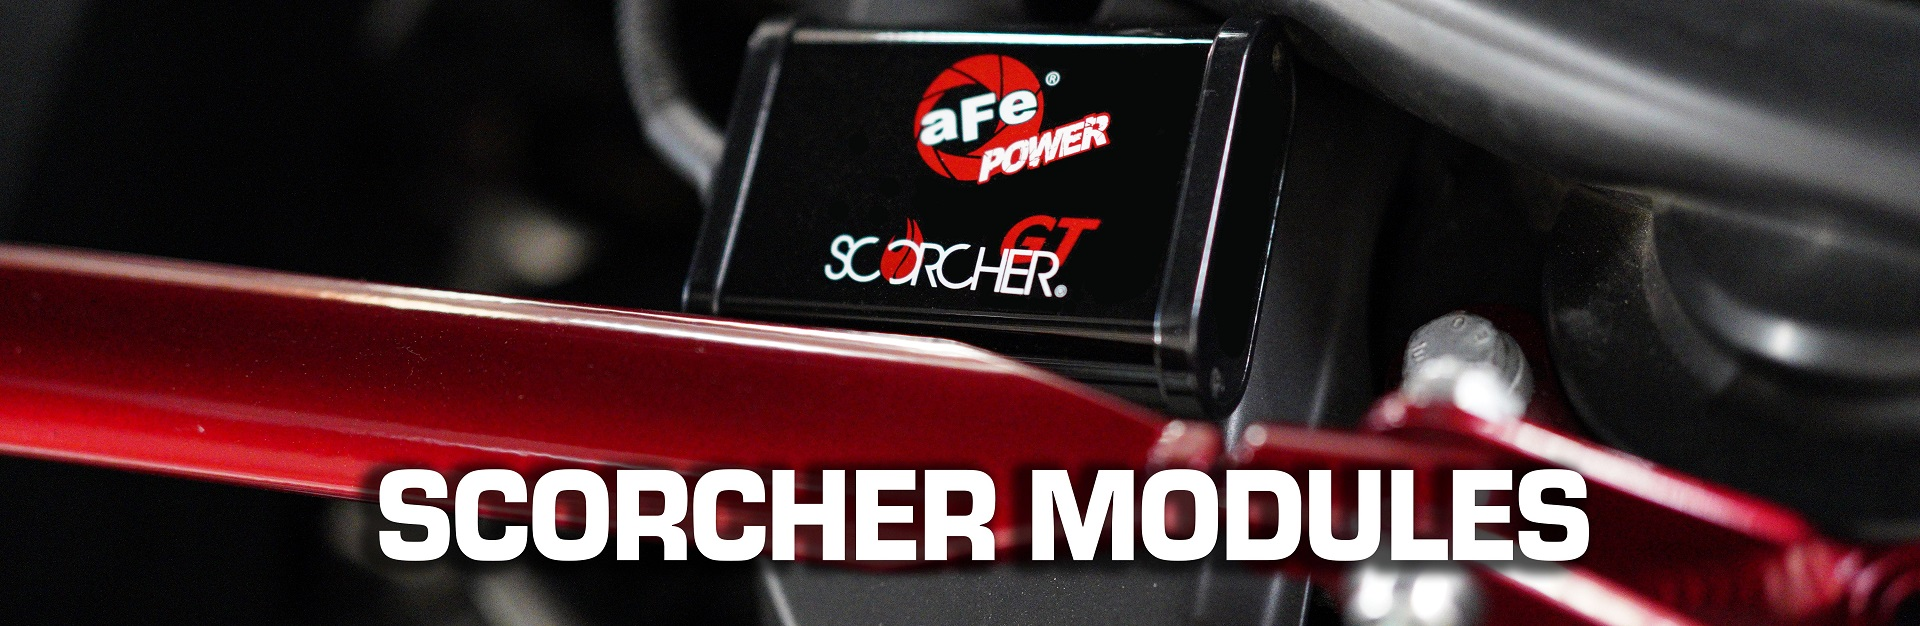 aFe POWER Performance Modules | aFe POWER